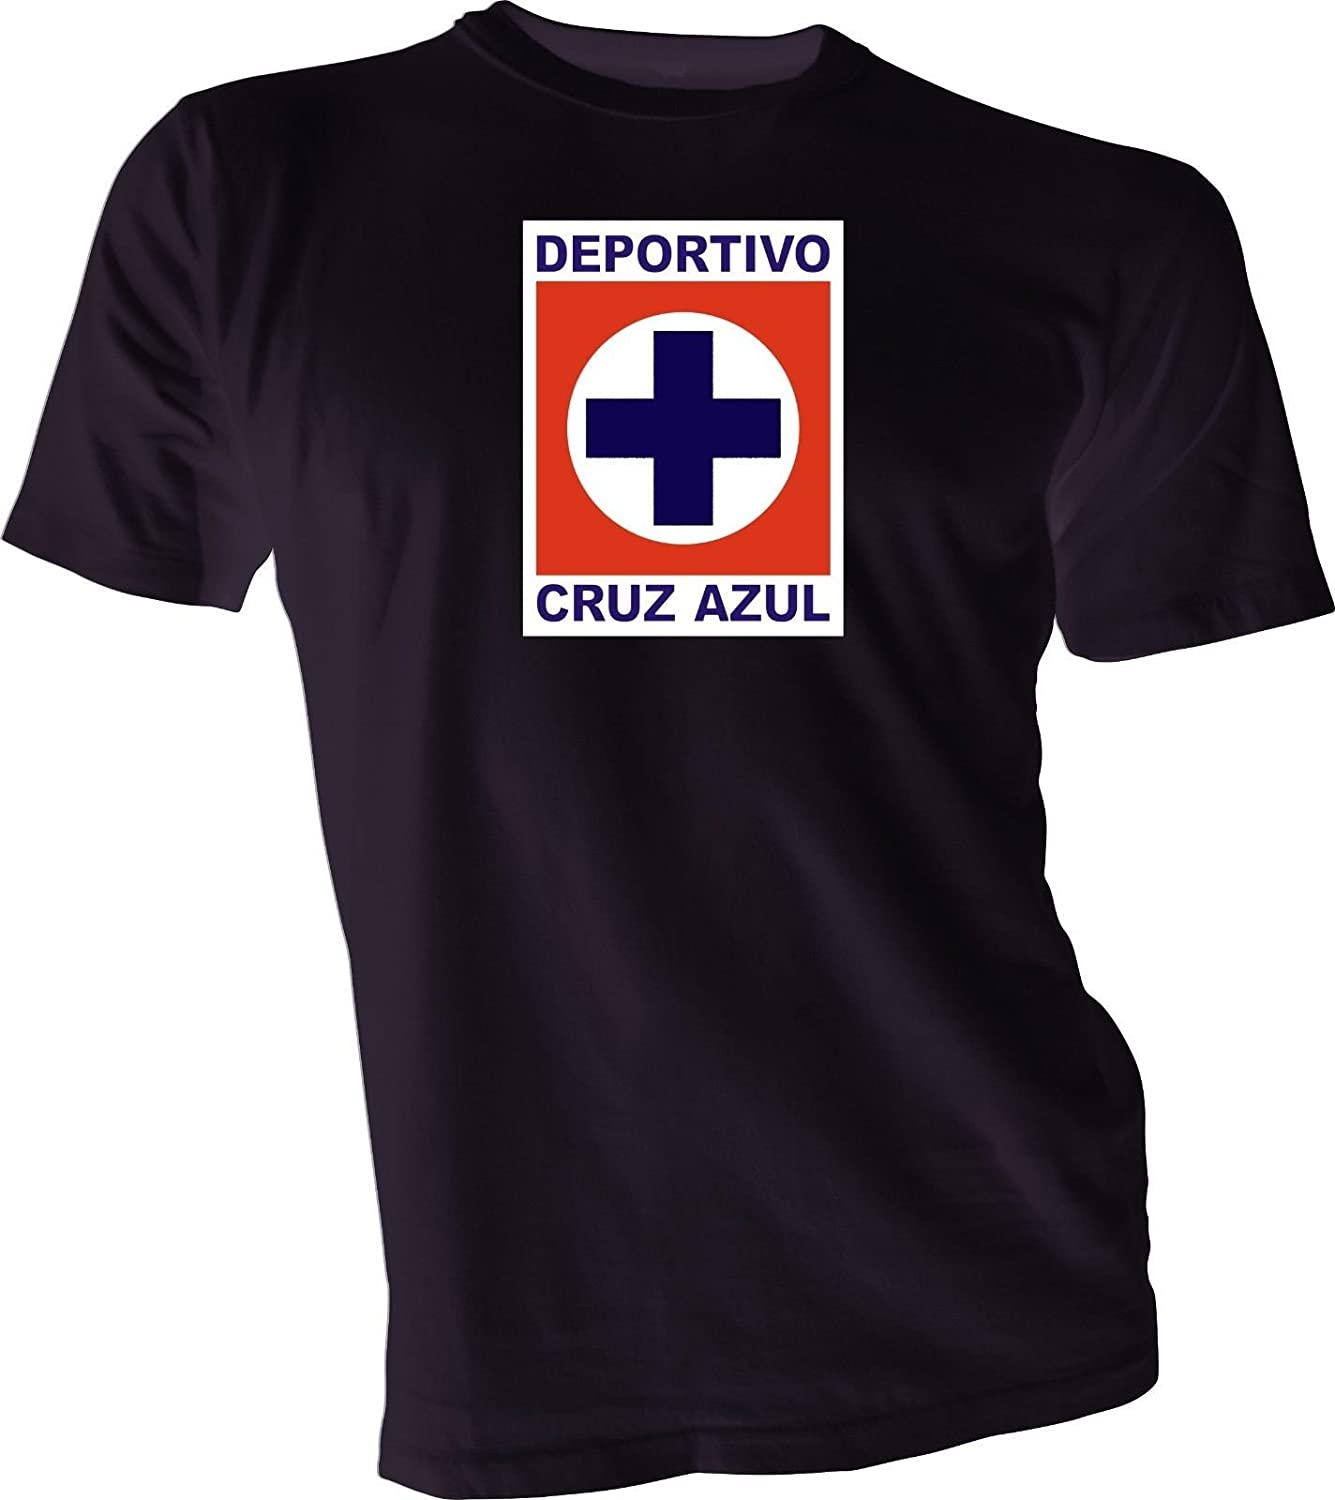 Amazon.com : DEPORTIVO CRUZ AZUL La Maquina Mexico Soccer Futbol Black T-SHIRT Camiseta NEW s : Sports & Outdoors